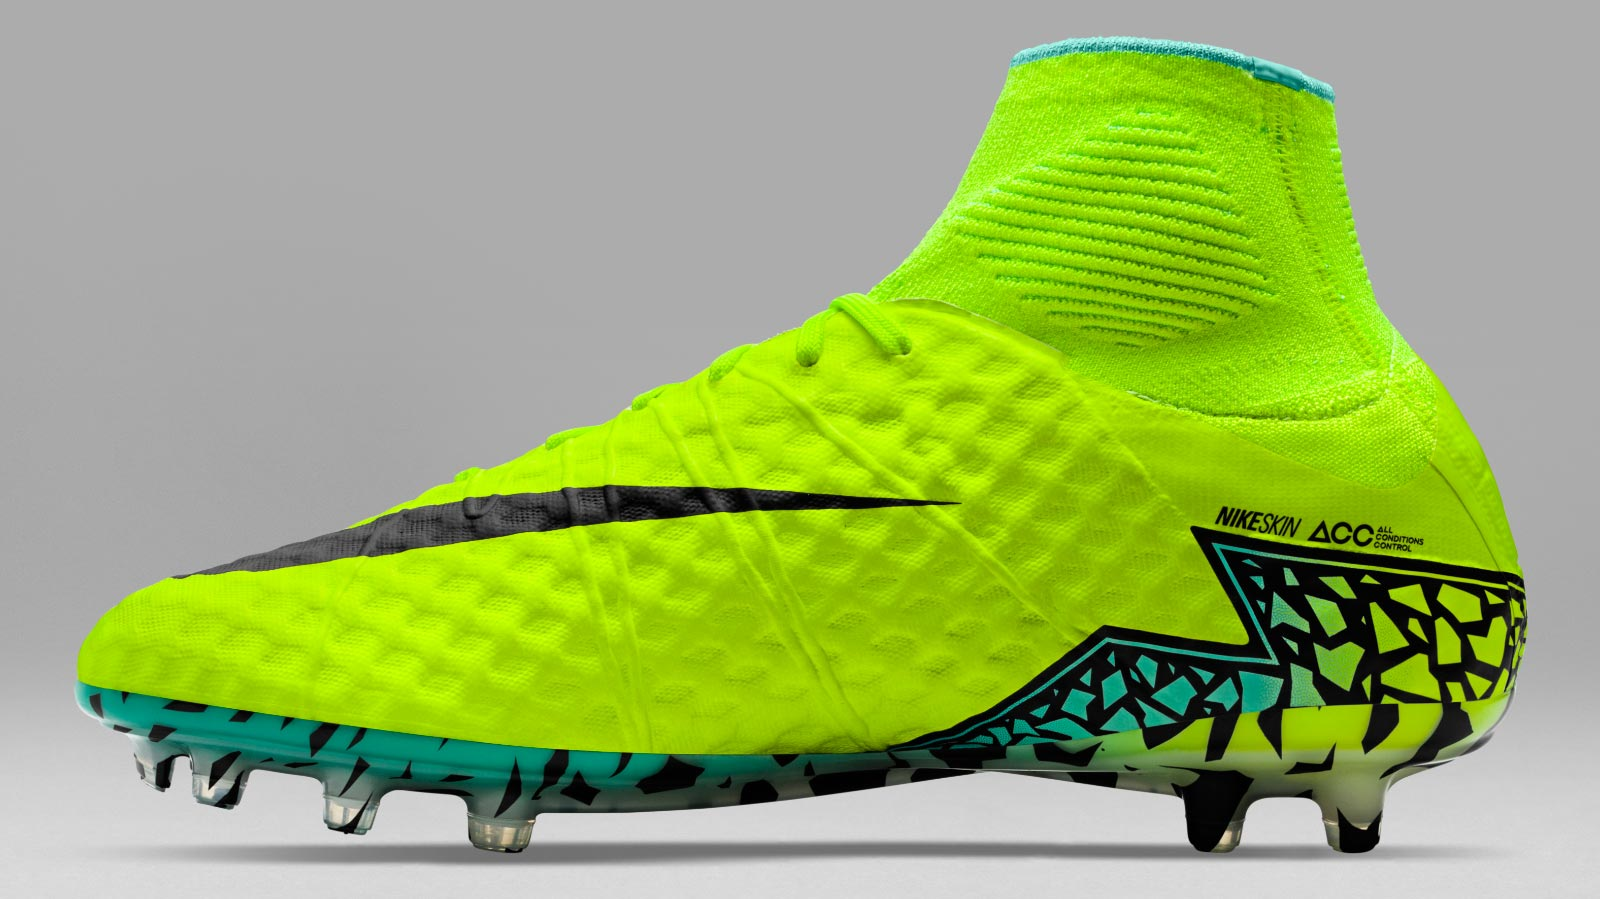 Nike Hypervenom Phantom III Tech Craft Boots Released